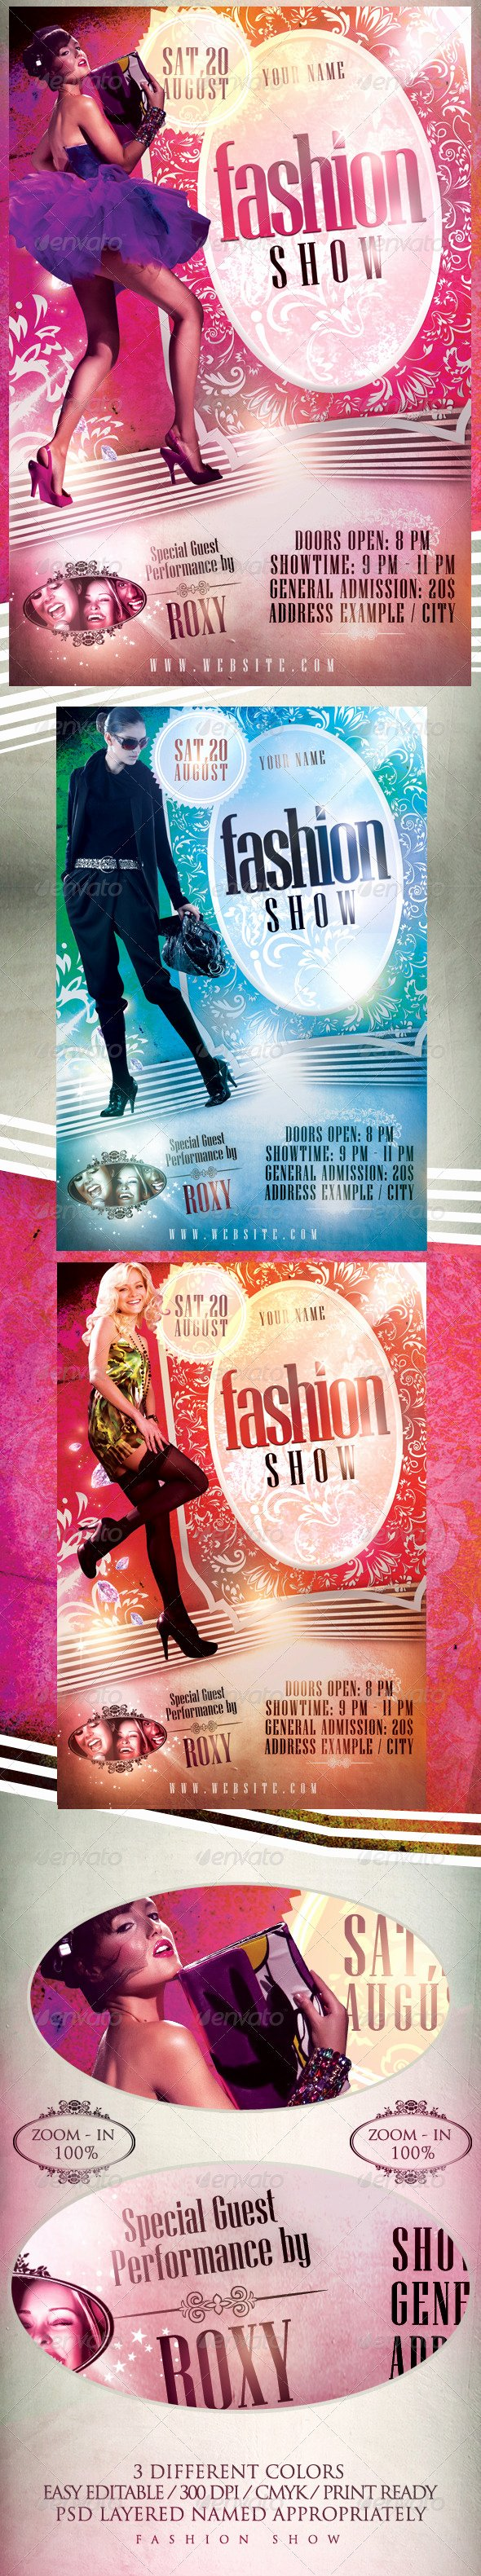 Fashion Show Flyer Template Awesome Fashion Show Flyer Template On Behance